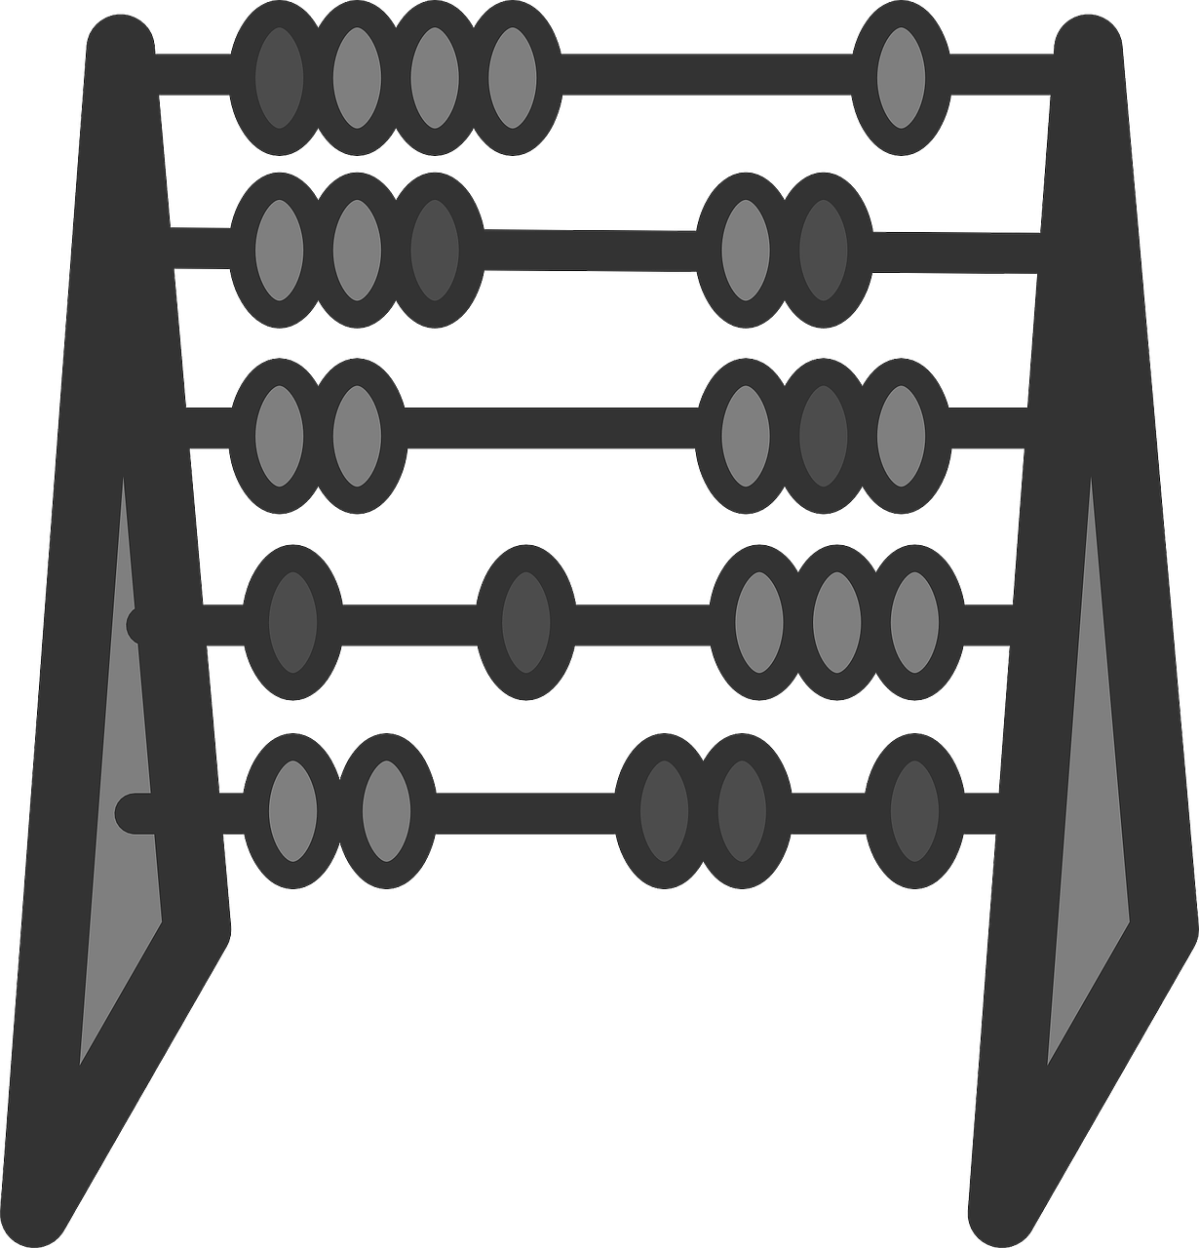 Clipart image of an abacus.